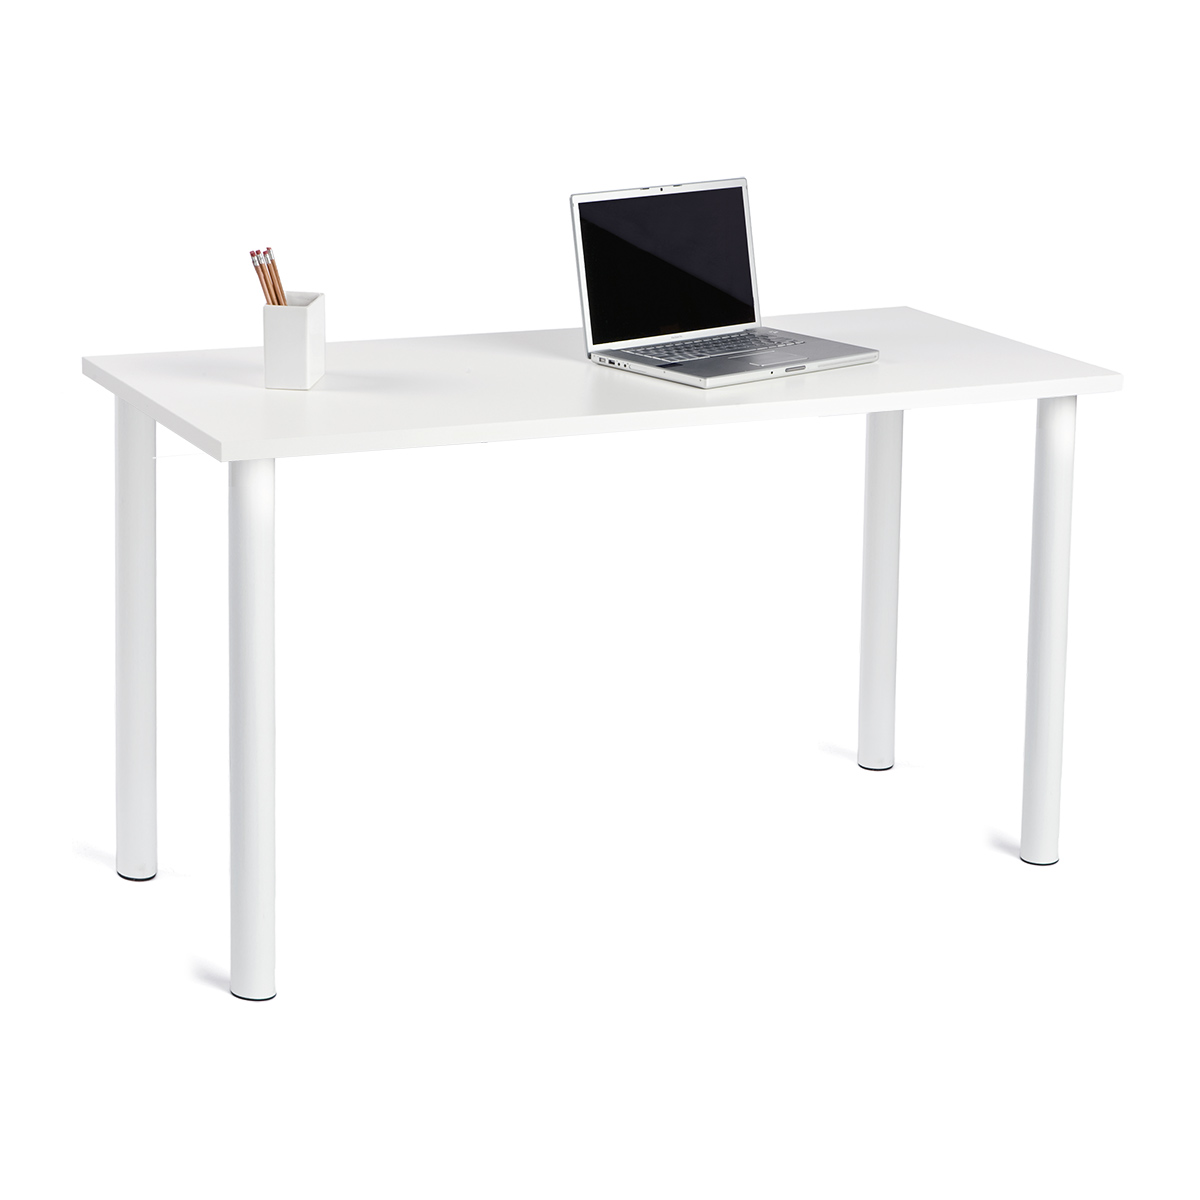 Elfa Desk Configuration Basic Legs